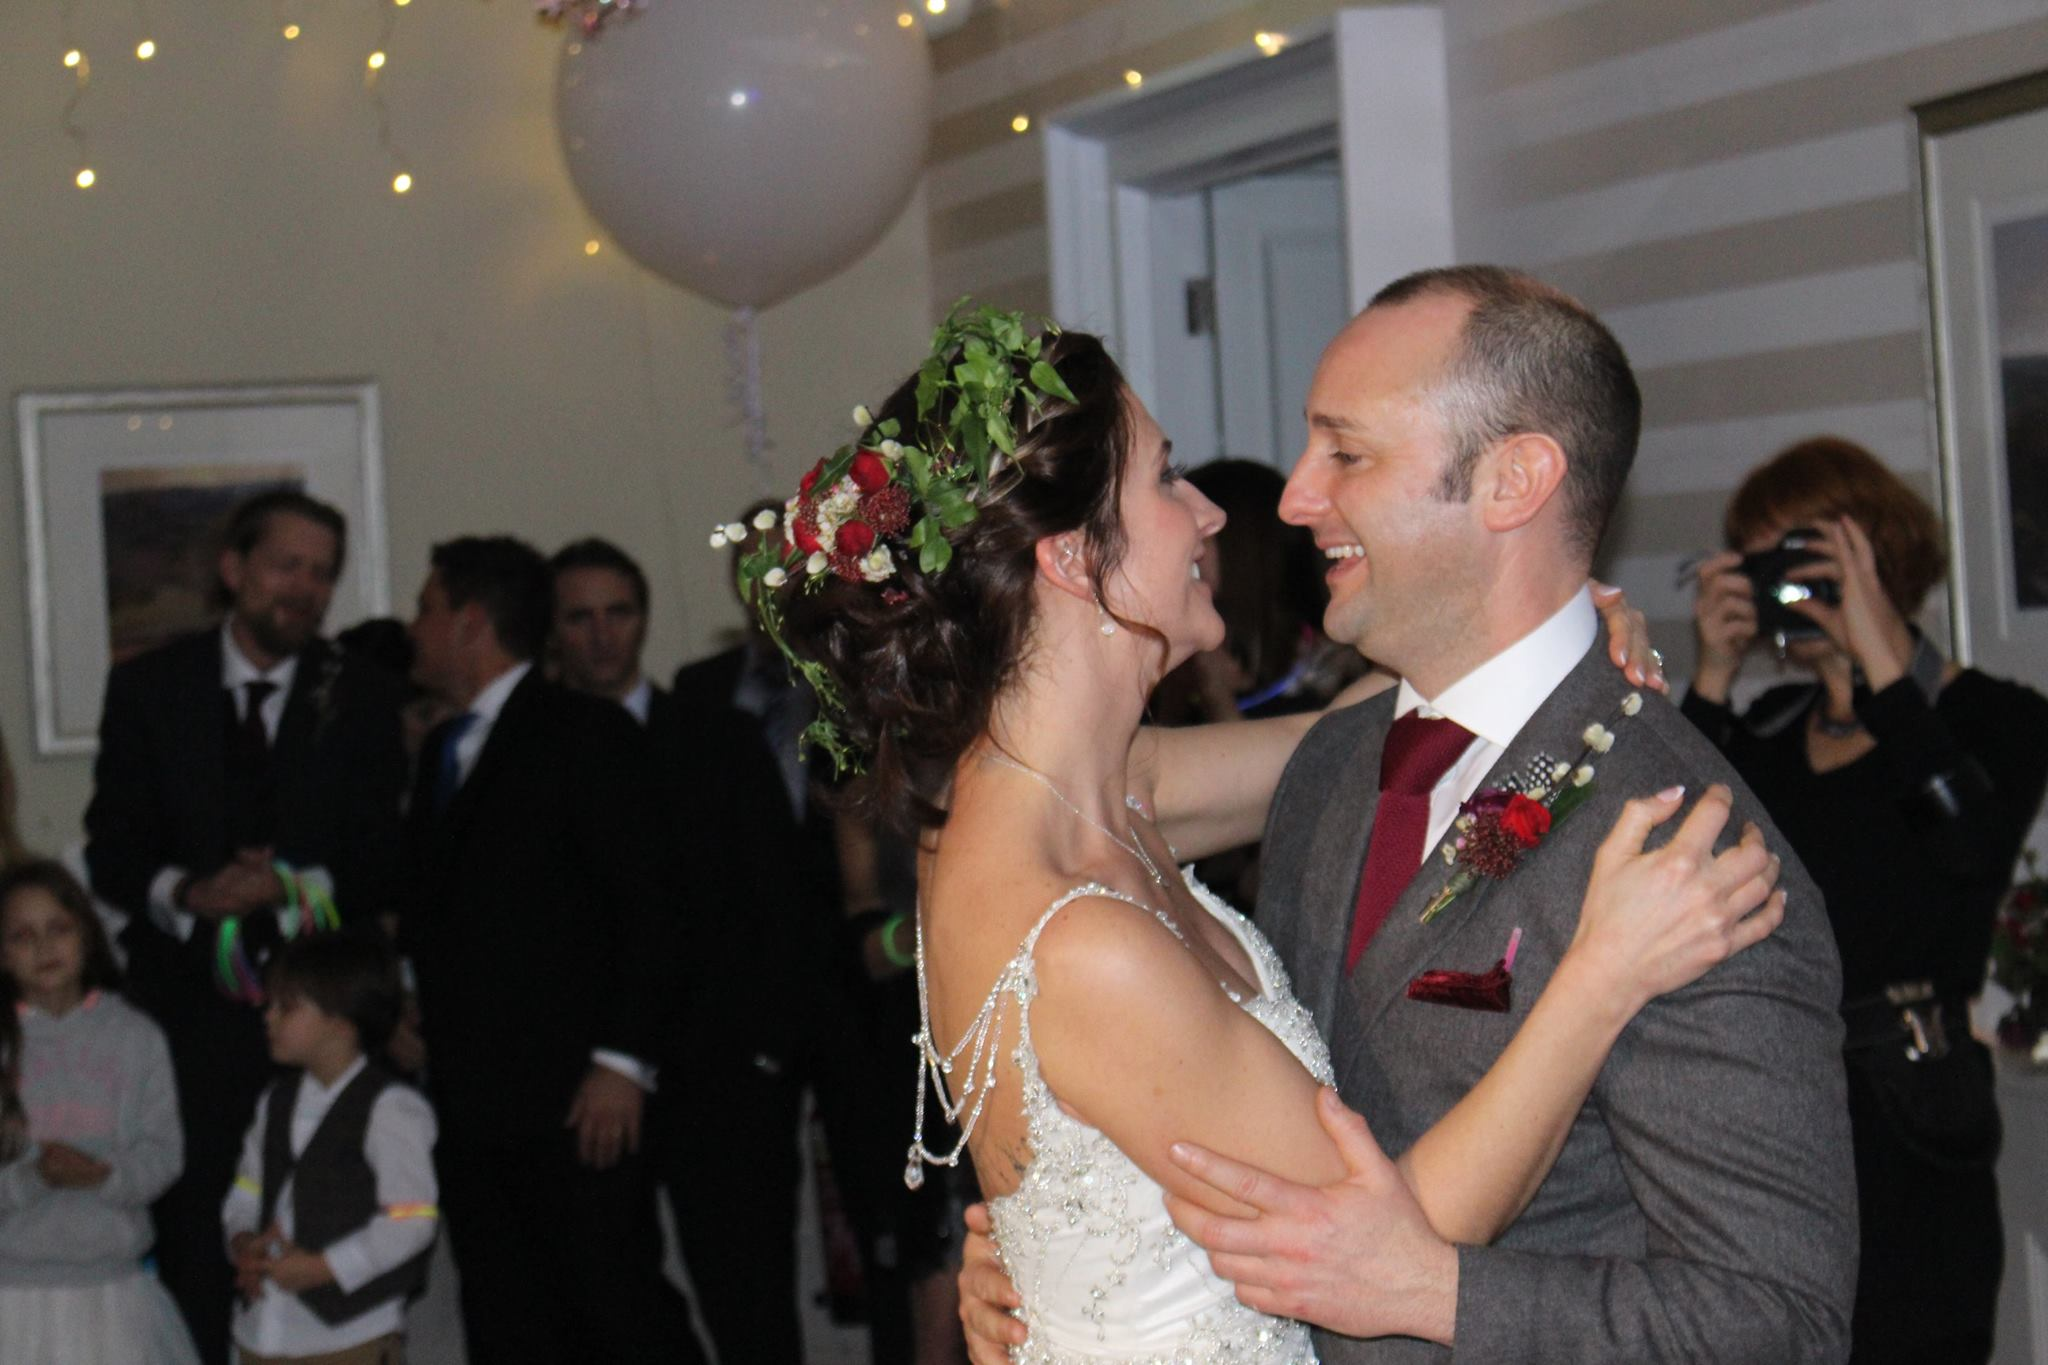 Bride and Groom's First Dance at The Belsfield Hotel.